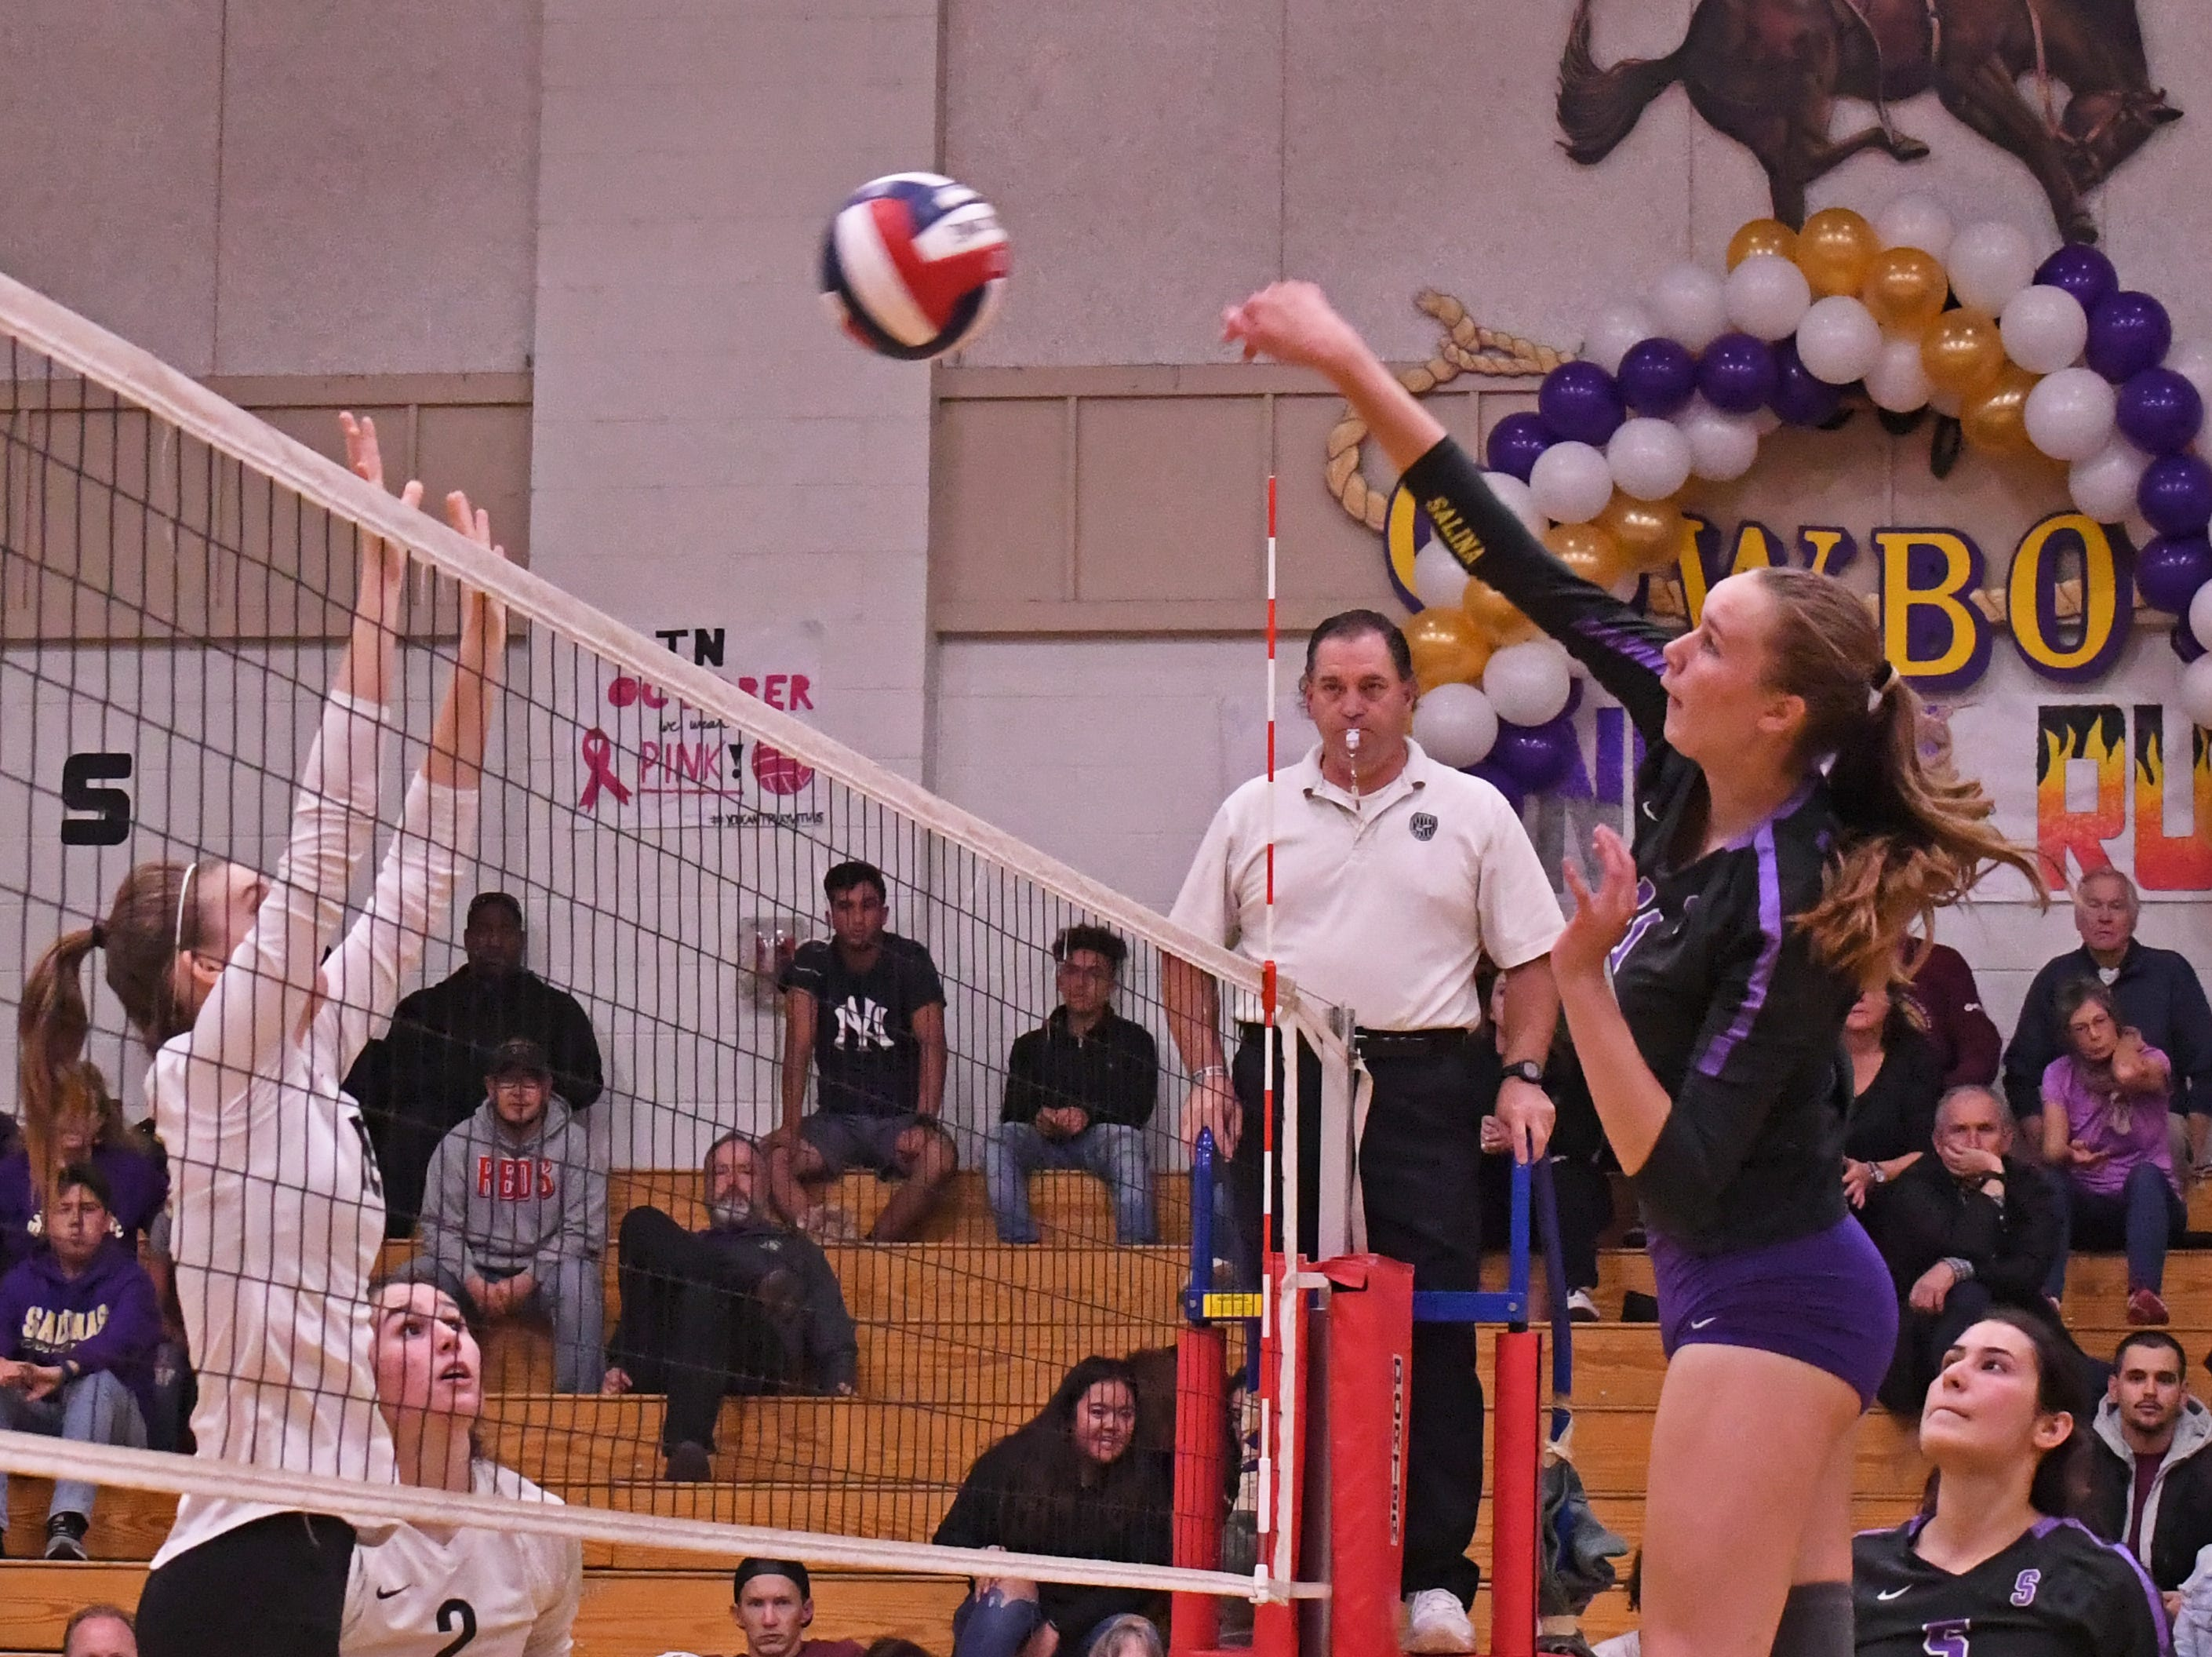 Middle blocker Savanna Maker (11) was an imposing force for the Cowboys this season and earned her status as an All-League player in the PCAL-Gabilan Division.